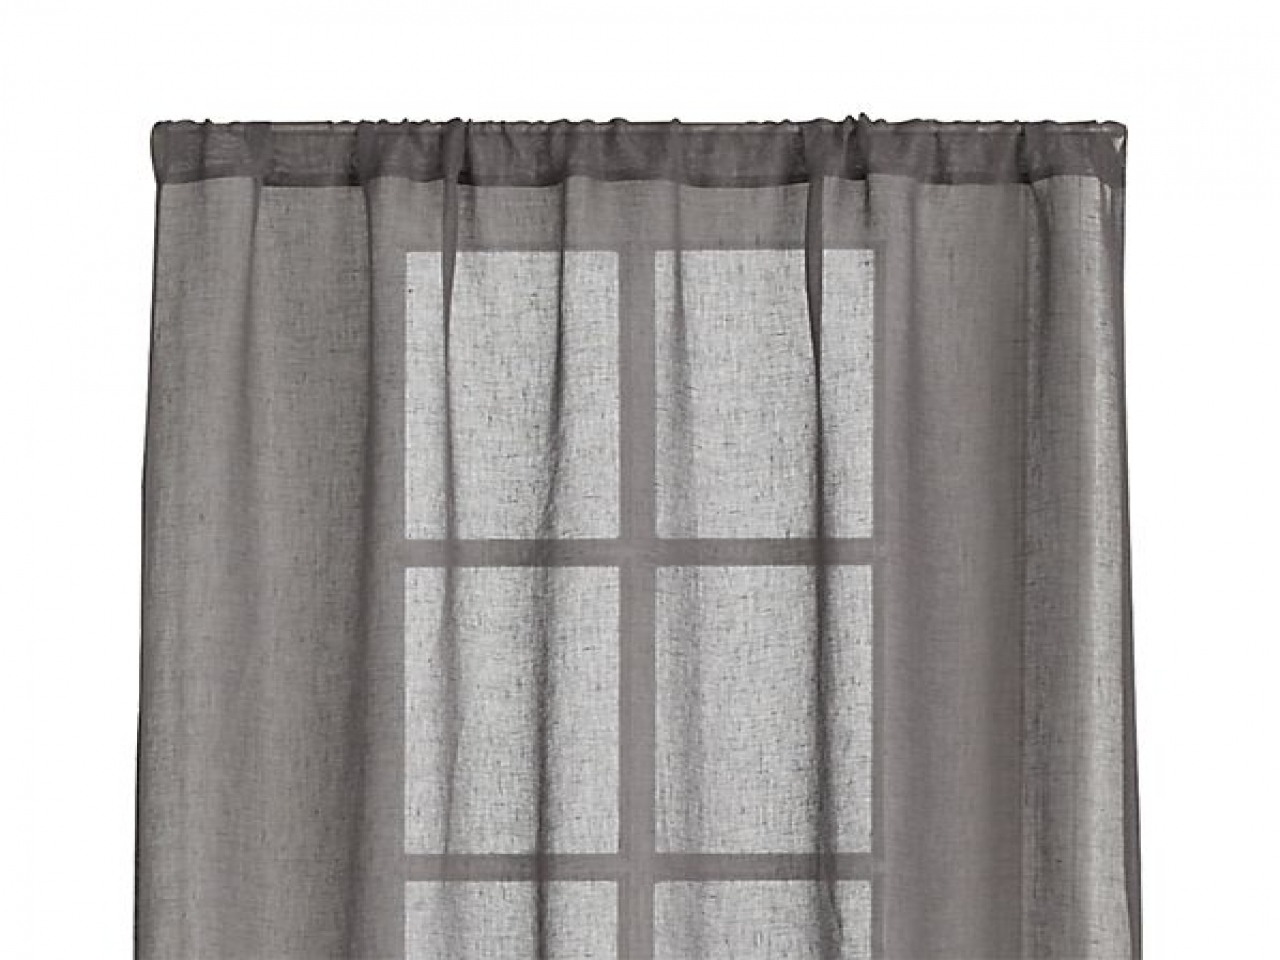 Linen Panel Curtains Grey Sheer Curtain Panels Dark Grey Sheer Inside Dark Grey Sheer Curtains (Image 19 of 25)